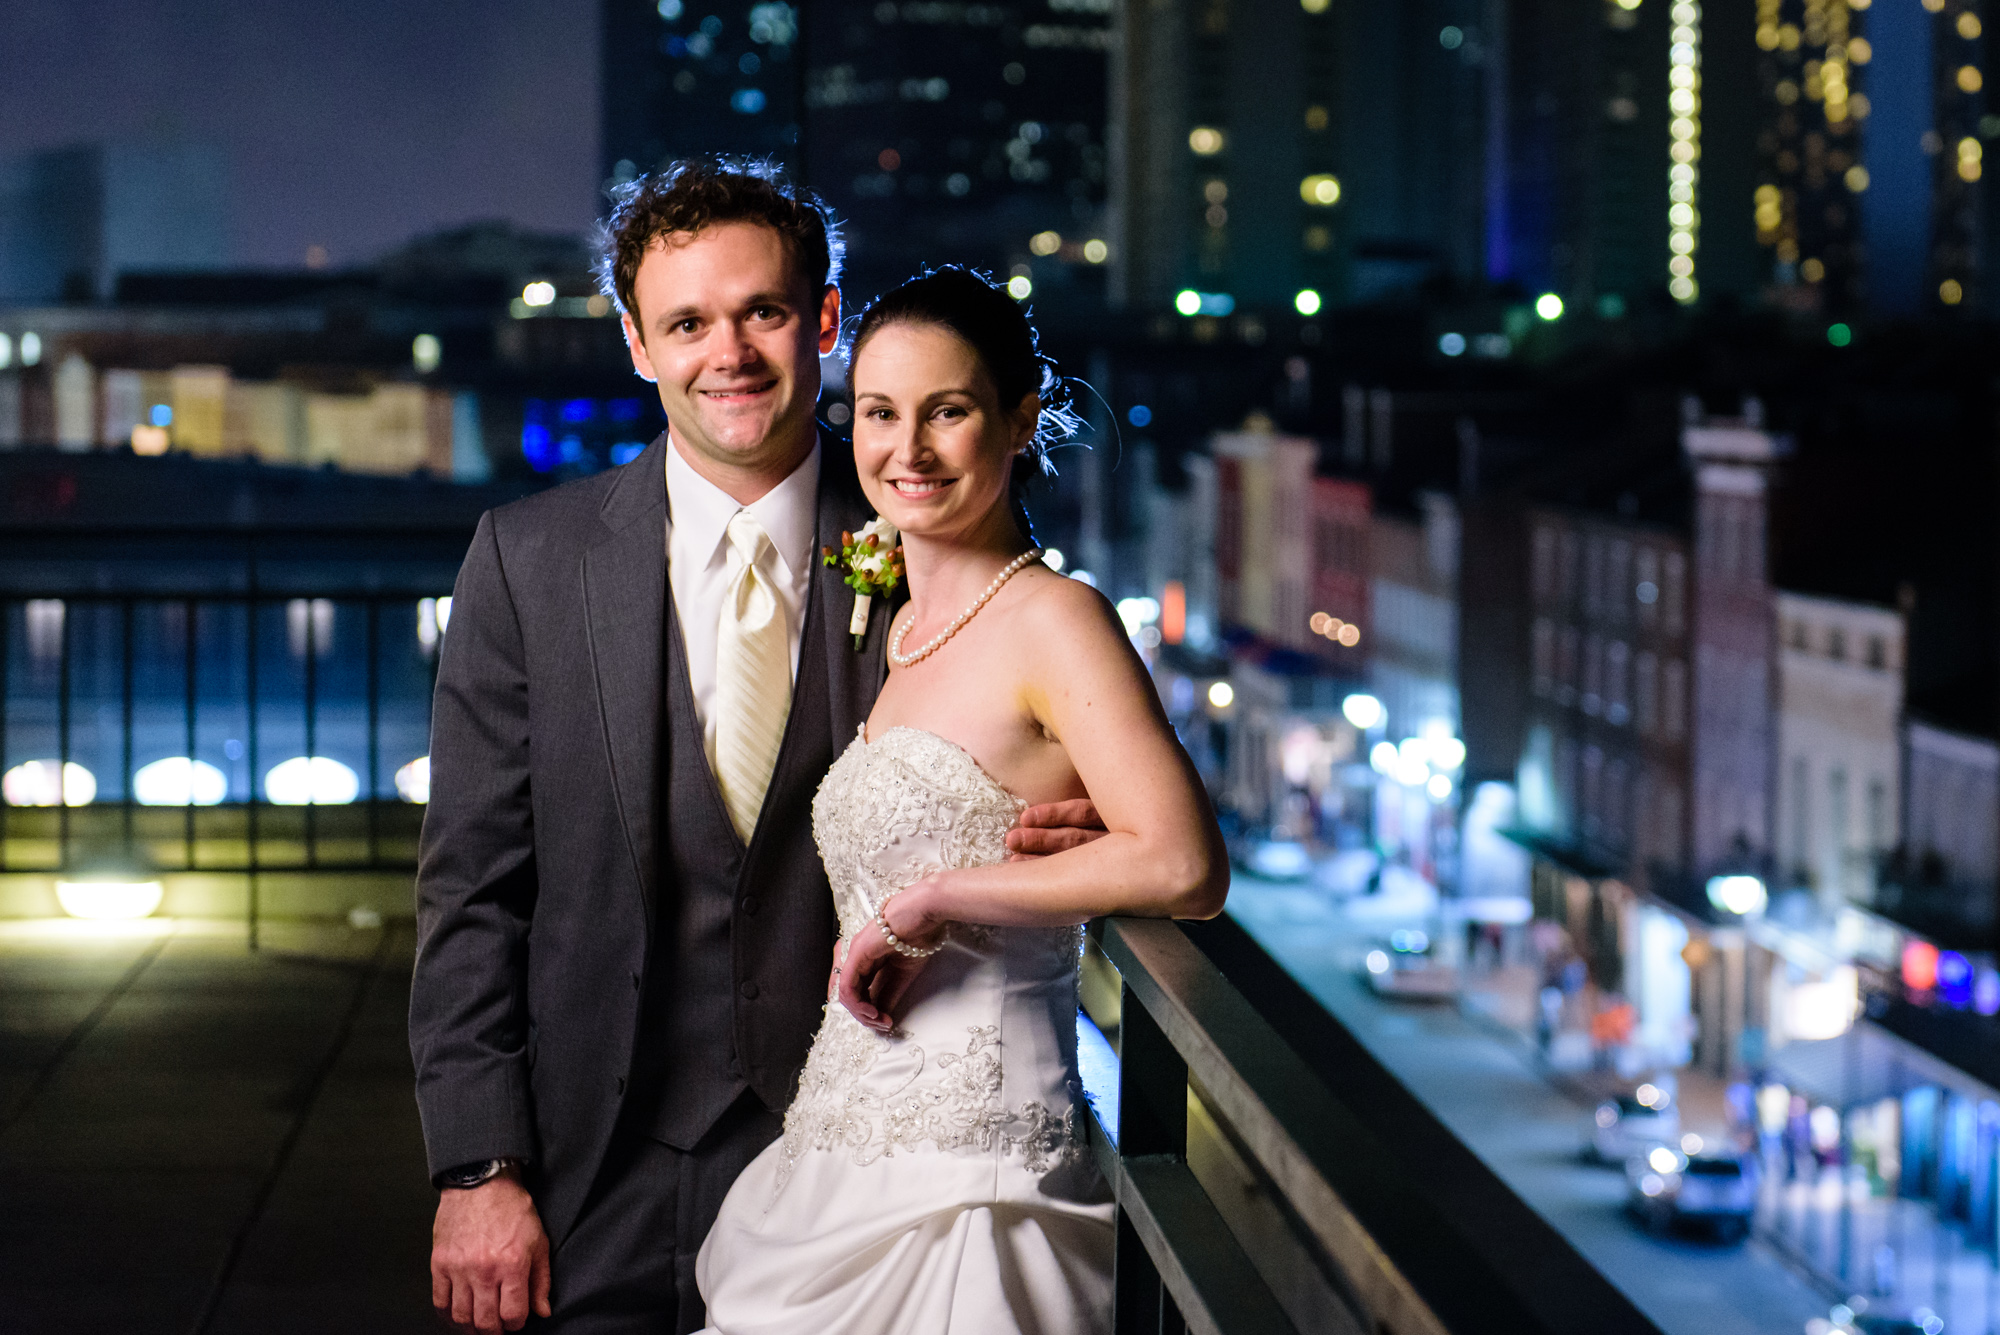 Portrait of a newly married couple at the Riverview Room's balcony, New Orleans